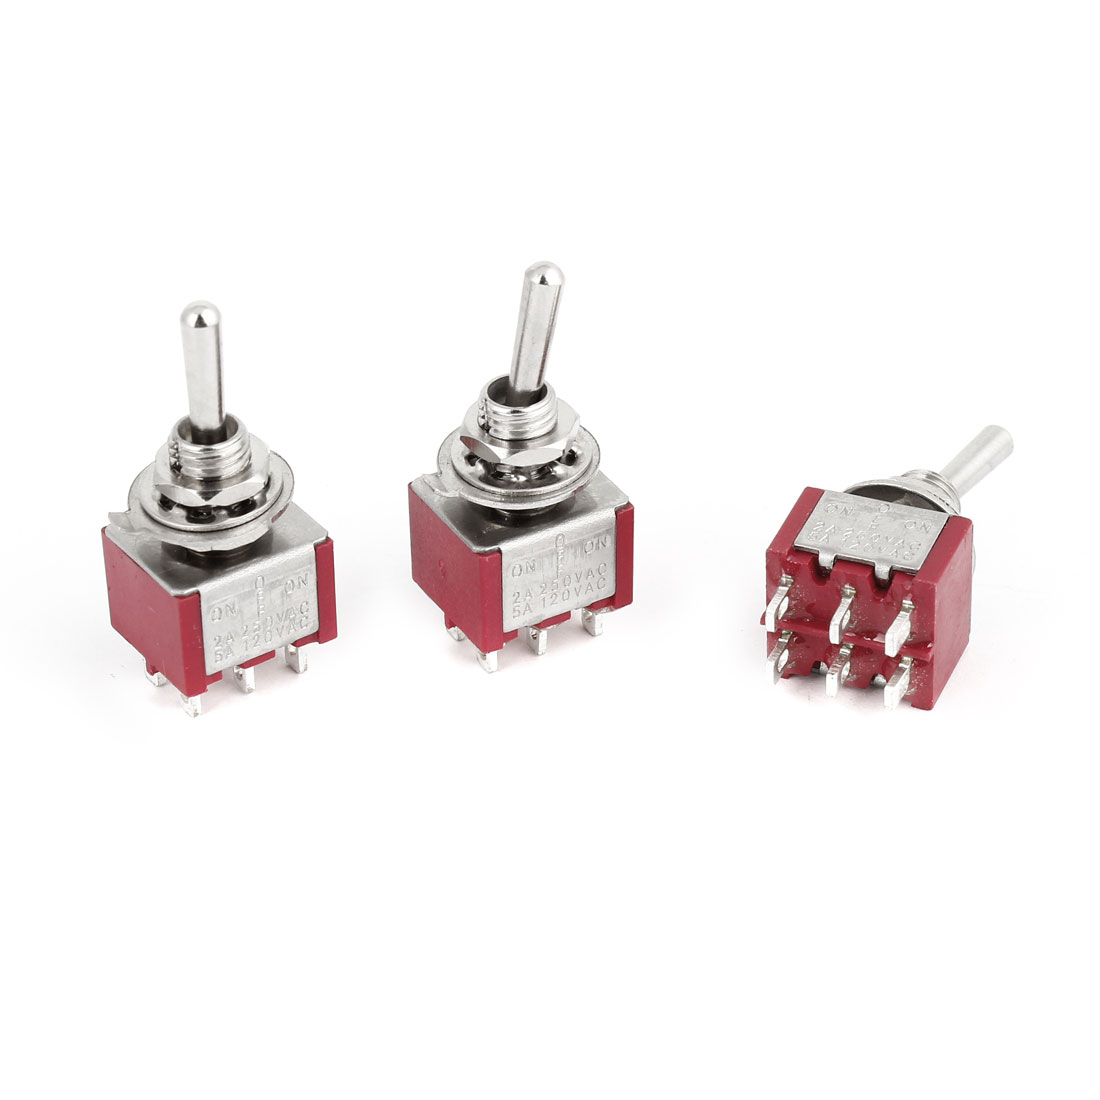 3pcs Switching Light Toggle Switch 2 Positions 6Pins DPDT AC 250V 2A 120V 5A